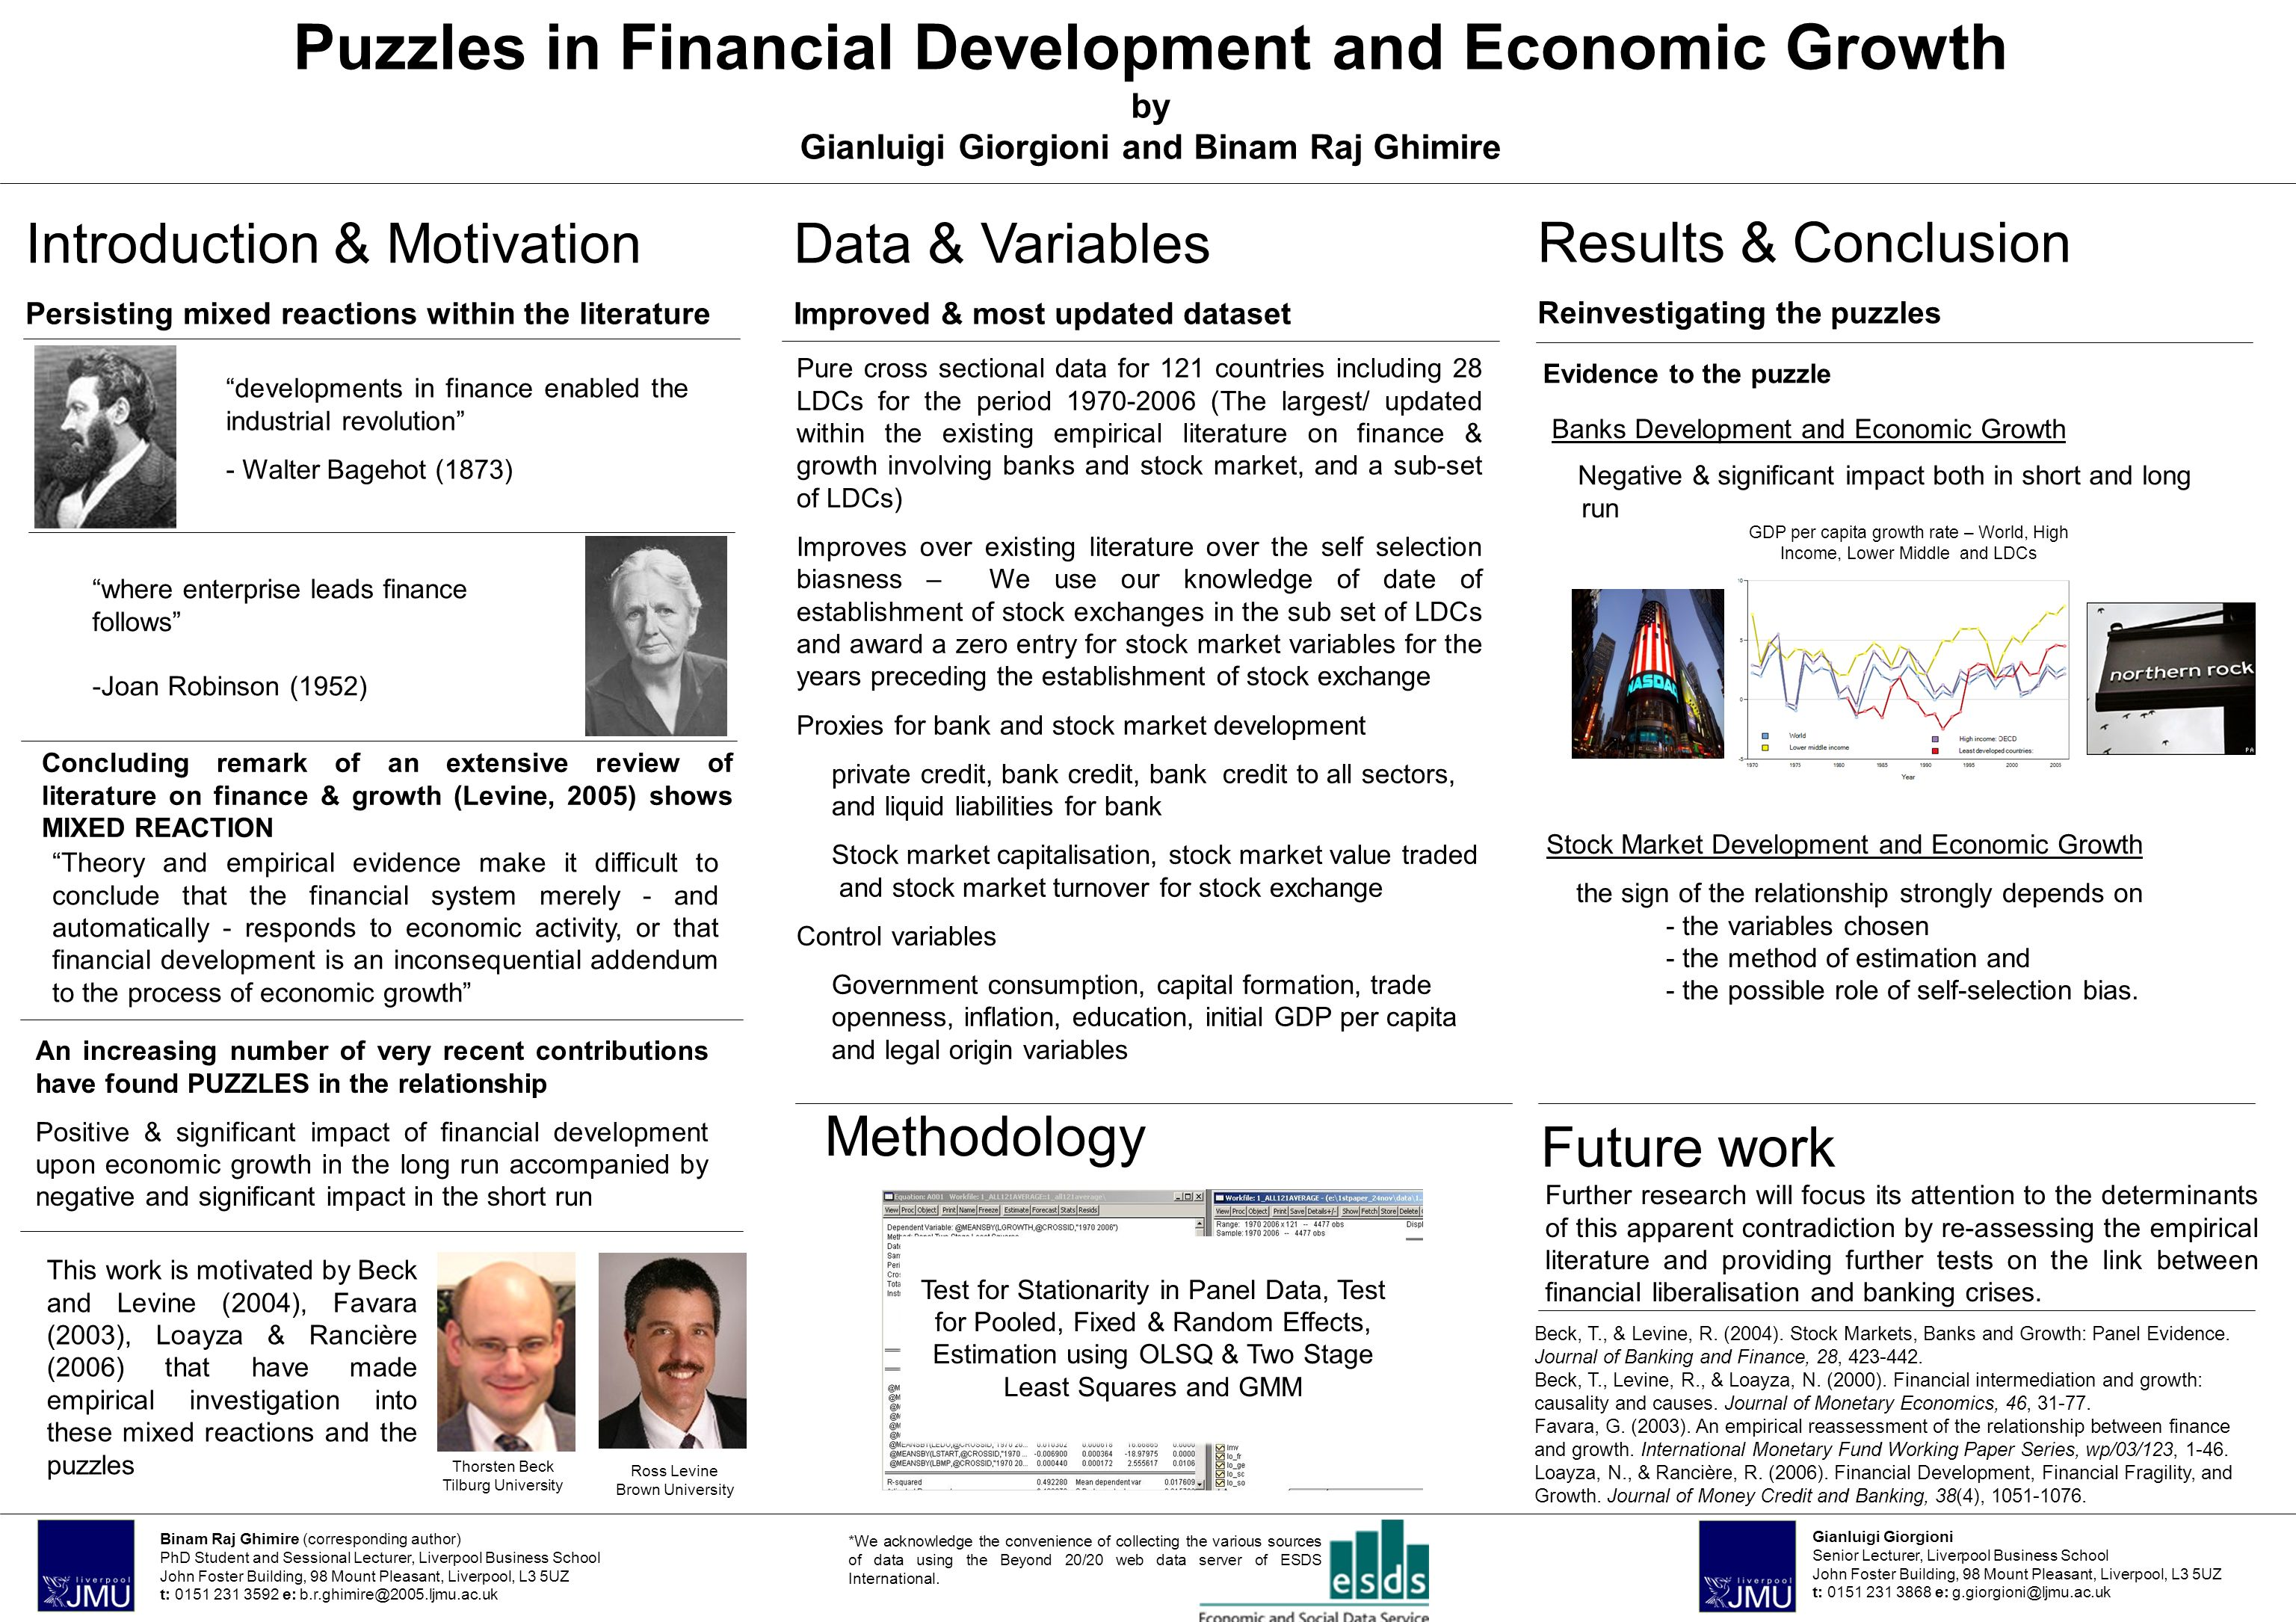 Puzzles in Financial Development and Economic Growth by Gianluigi Giorgioni and Binam Raj Ghimire Banks Development and Economic Growth Negative & significant impact both in short and long run Introduction & Motivation Persisting mixed reactions within the literature Binam Raj Ghimire (corresponding author) PhD Student and Sessional Lecturer, Liverpool Business School John Foster Building, 98 Mount Pleasant, Liverpool, L3 5UZ t: 0151 231 3592 e: b.r.ghimire@2005.ljmu.ac.uk where enterprise leads finance follows -Joan Robinson (1952) developments in finance enabled the industrial revolution - Walter Bagehot (1873) Theory and empirical evidence make it difficult to conclude that the financial system merely - and automatically - responds to economic activity, or that financial development is an inconsequential addendum to the process of economic growth Concluding remark of an extensive review of literature on finance & growth (Levine, 2005) shows MIXED REACTION An increasing number of very recent contributions have found PUZZLES in the relationship Positive & significant impact of financial development upon economic growth in the long run accompanied by negative and significant impact in the short run This work is motivated by Beck and Levine (2004), Favara (2003), Loayza & Rancière (2006) that have made empirical investigation into these mixed reactions and the puzzles Pure cross sectional data for 121 countries including 28 LDCs for the period 1970-2006 (The largest/ updated within the existing empirical literature on finance & growth involving banks and stock market, and a sub-set of LDCs) Improves over existing literature over the self selection biasness – We use our knowledge of date of establishment of stock exchanges in the sub set of LDCs and award a zero entry for stock market variables for the years preceding the establishment of stock exchange Proxies for bank and stock market development private credit, bank credit, bank credit to all sectors, and liquid li